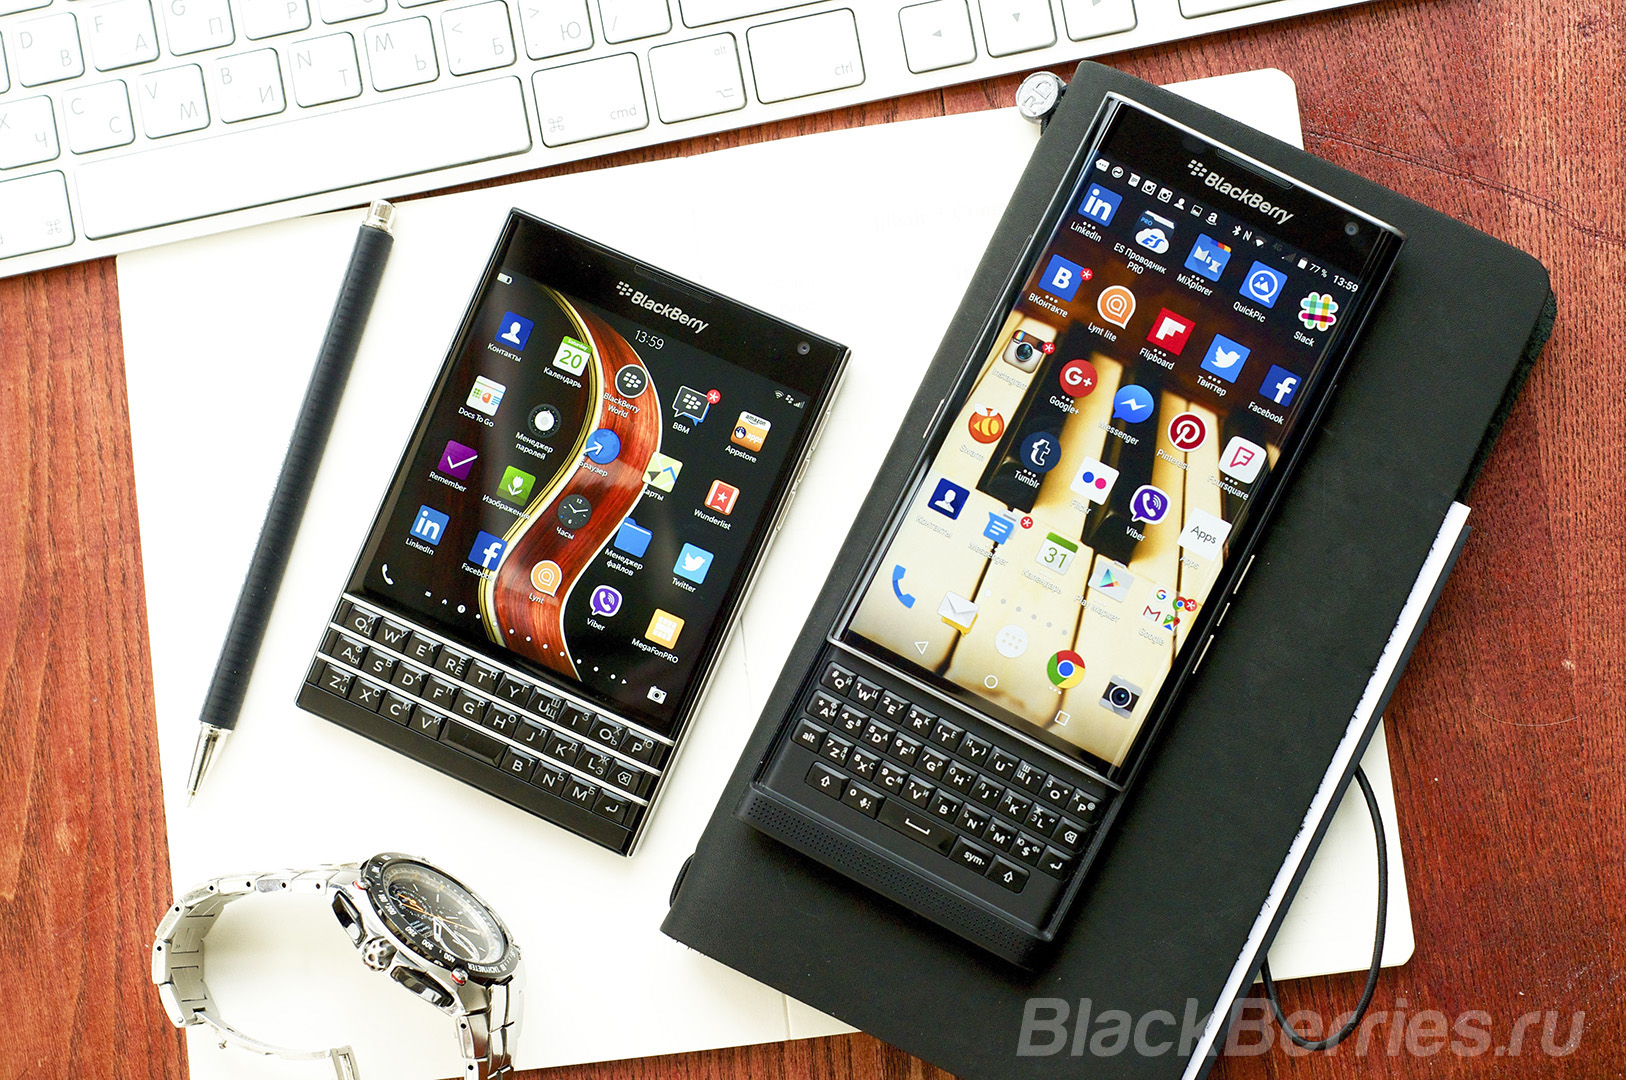 BlackBerry-Apps-20-02-04